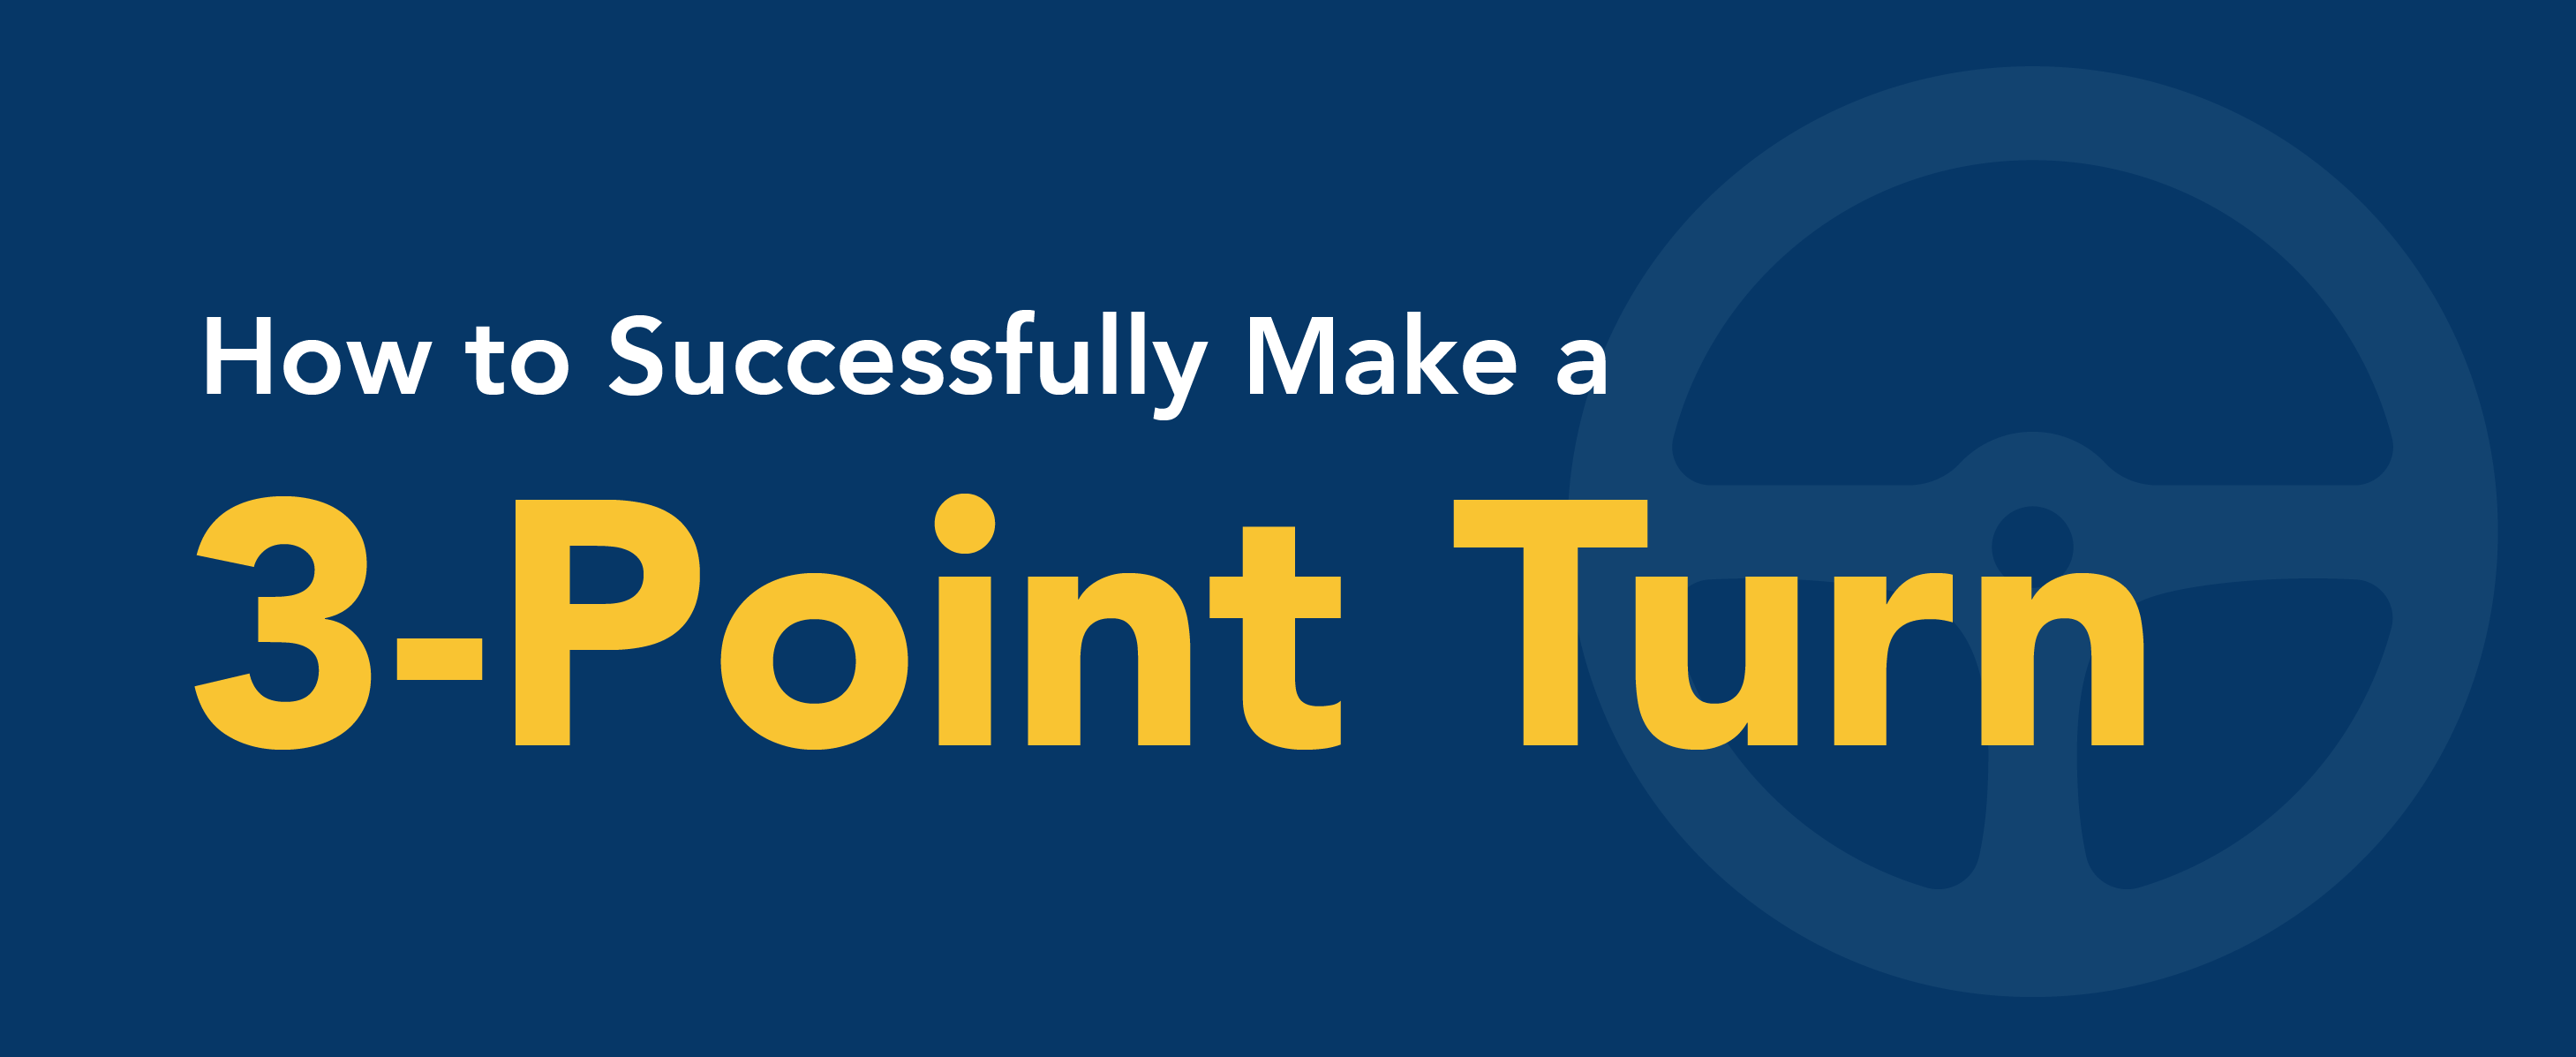 How to successfully male a 3-point turn.